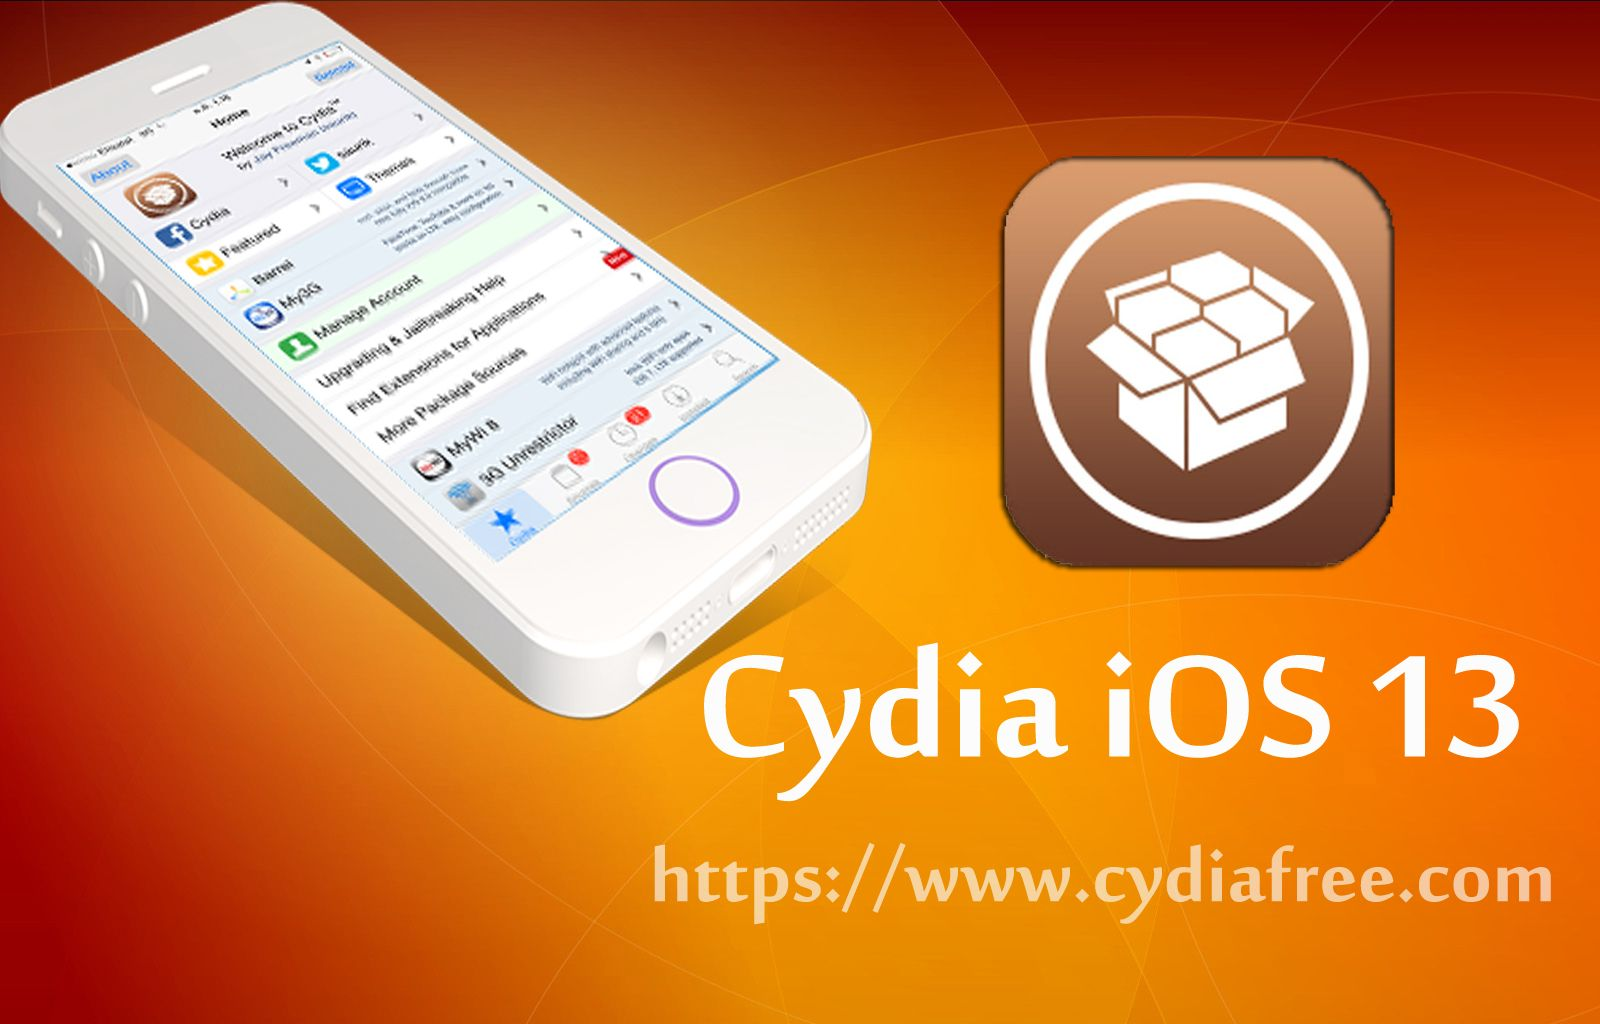 The best tweaks for iOS 13! Cydia iOS 13 is now available